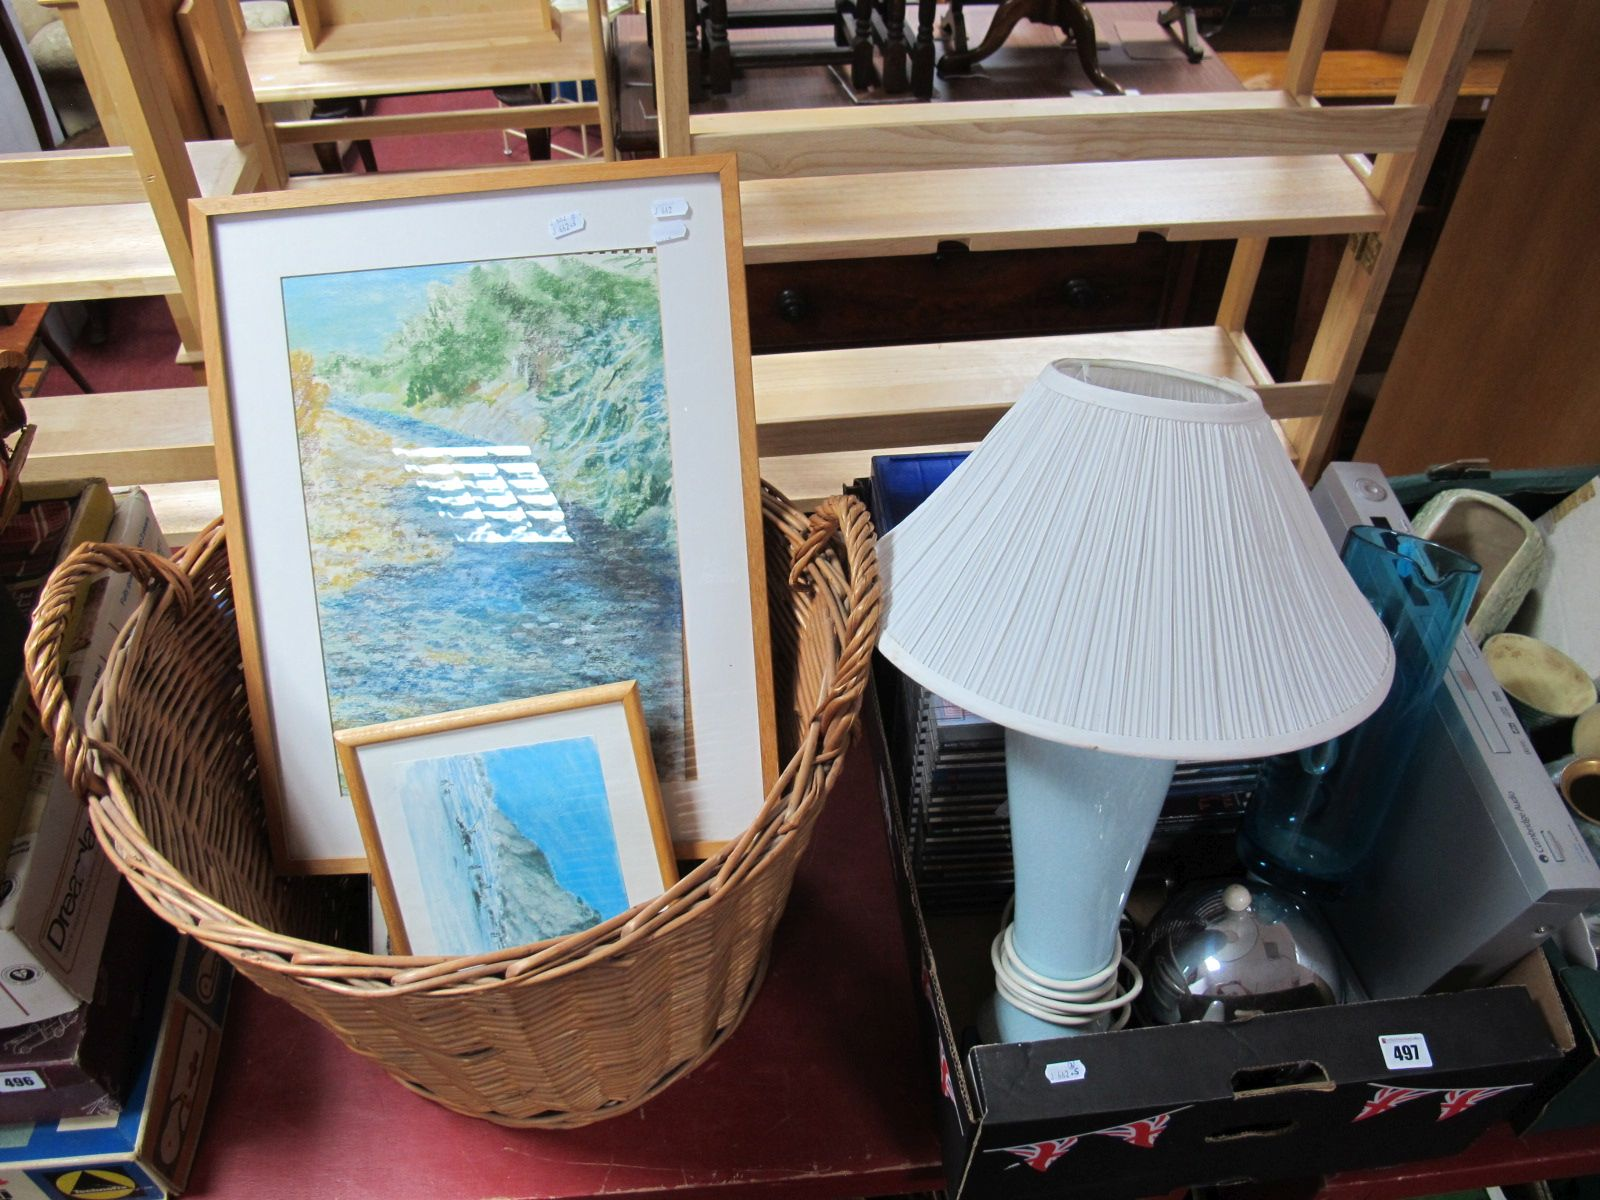 Lot 497 - A Cambridge Audio DVD Player and Remote, a quantity of CD's, pottery table lamp, blue glass jug,